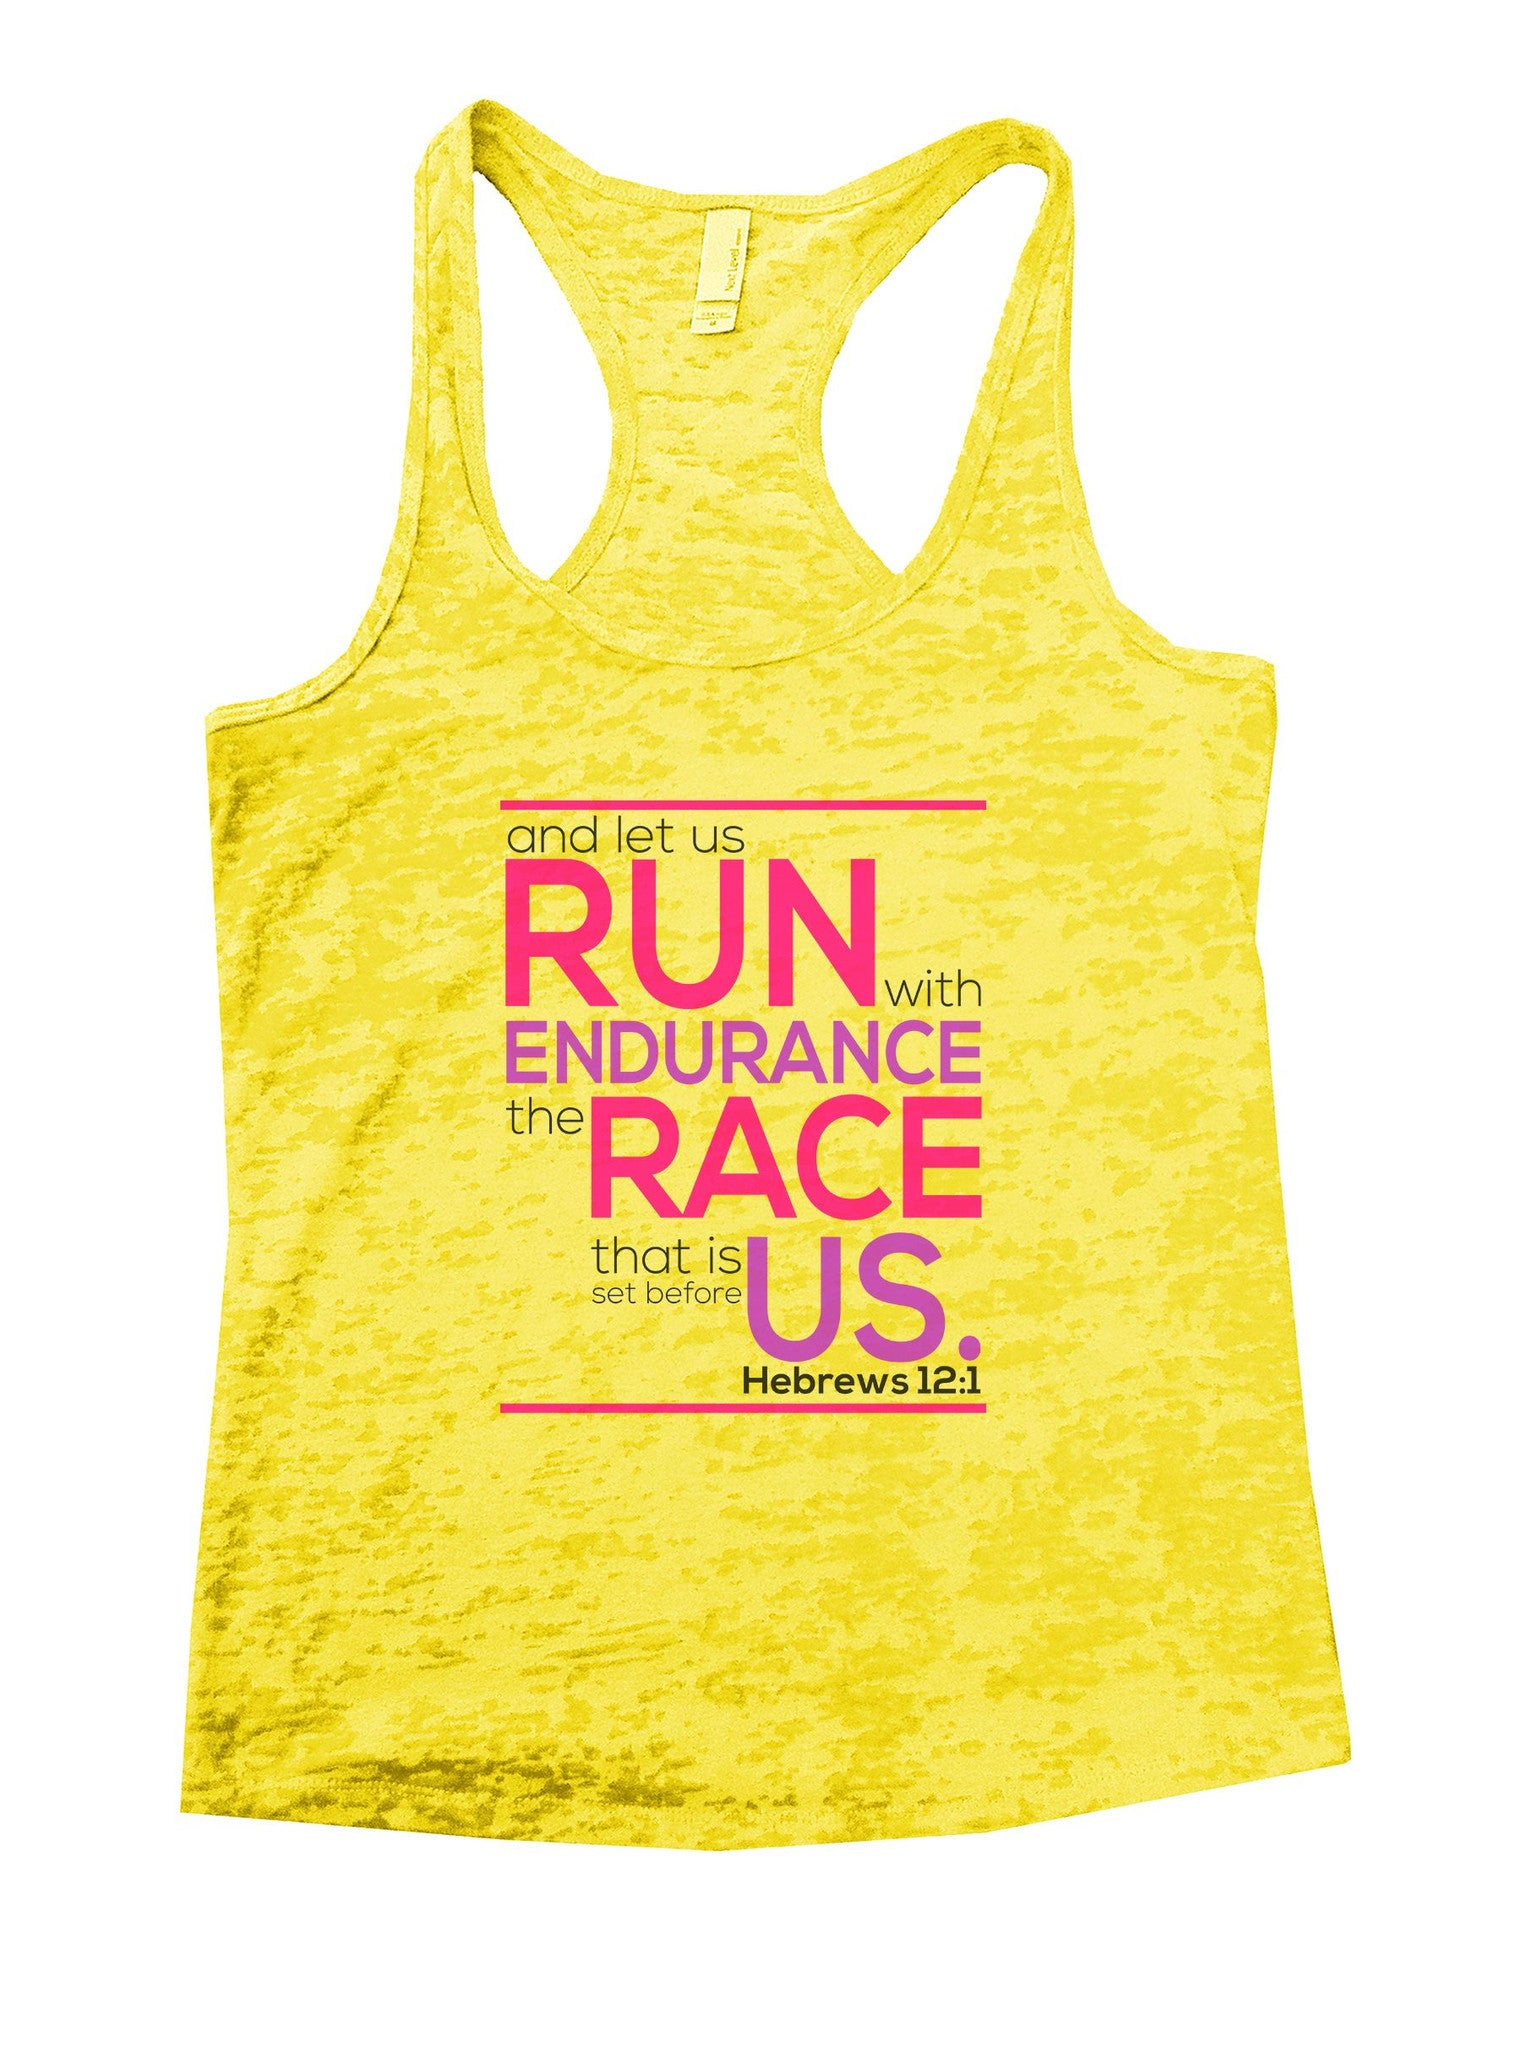 Run Endurance Race Us Burnout Tank Top By BurnoutTankTops.com - 1036 - Funny Shirts Tank Tops Burnouts and Triblends  - 7